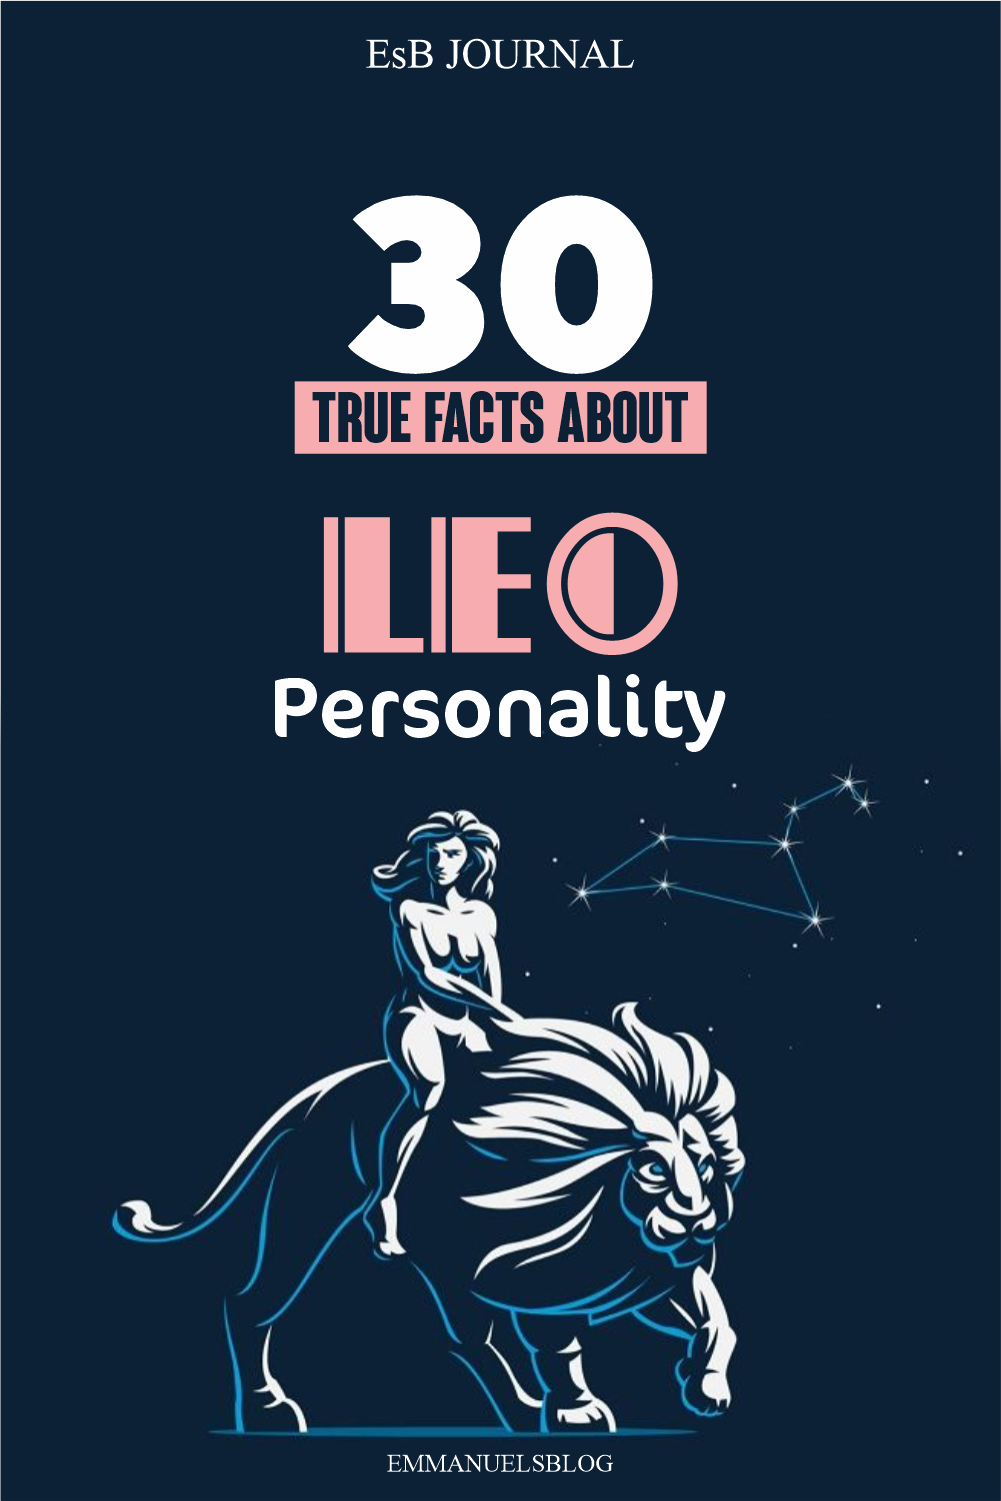 30 True Facts About Leo Personality